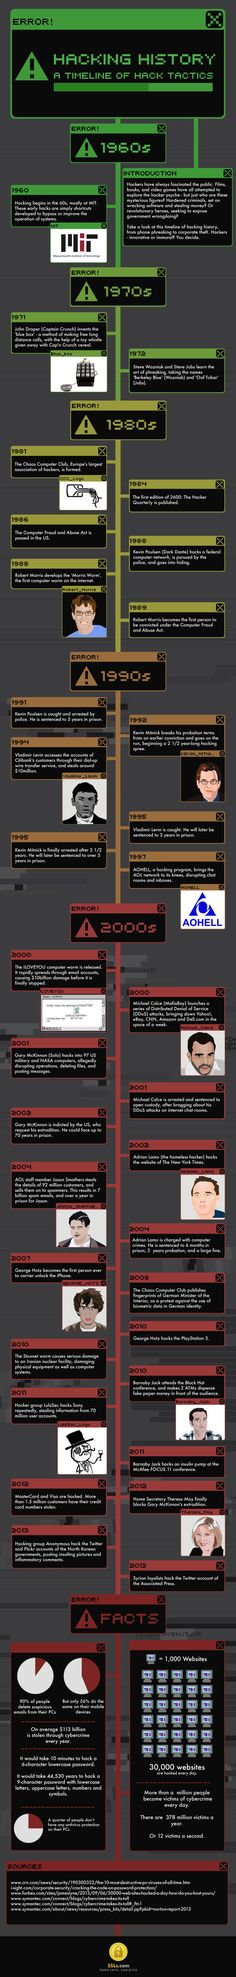 Hacking History: A Timeline Of Hack Tactics [Infographic] - See www.noworriesit.net for more info.